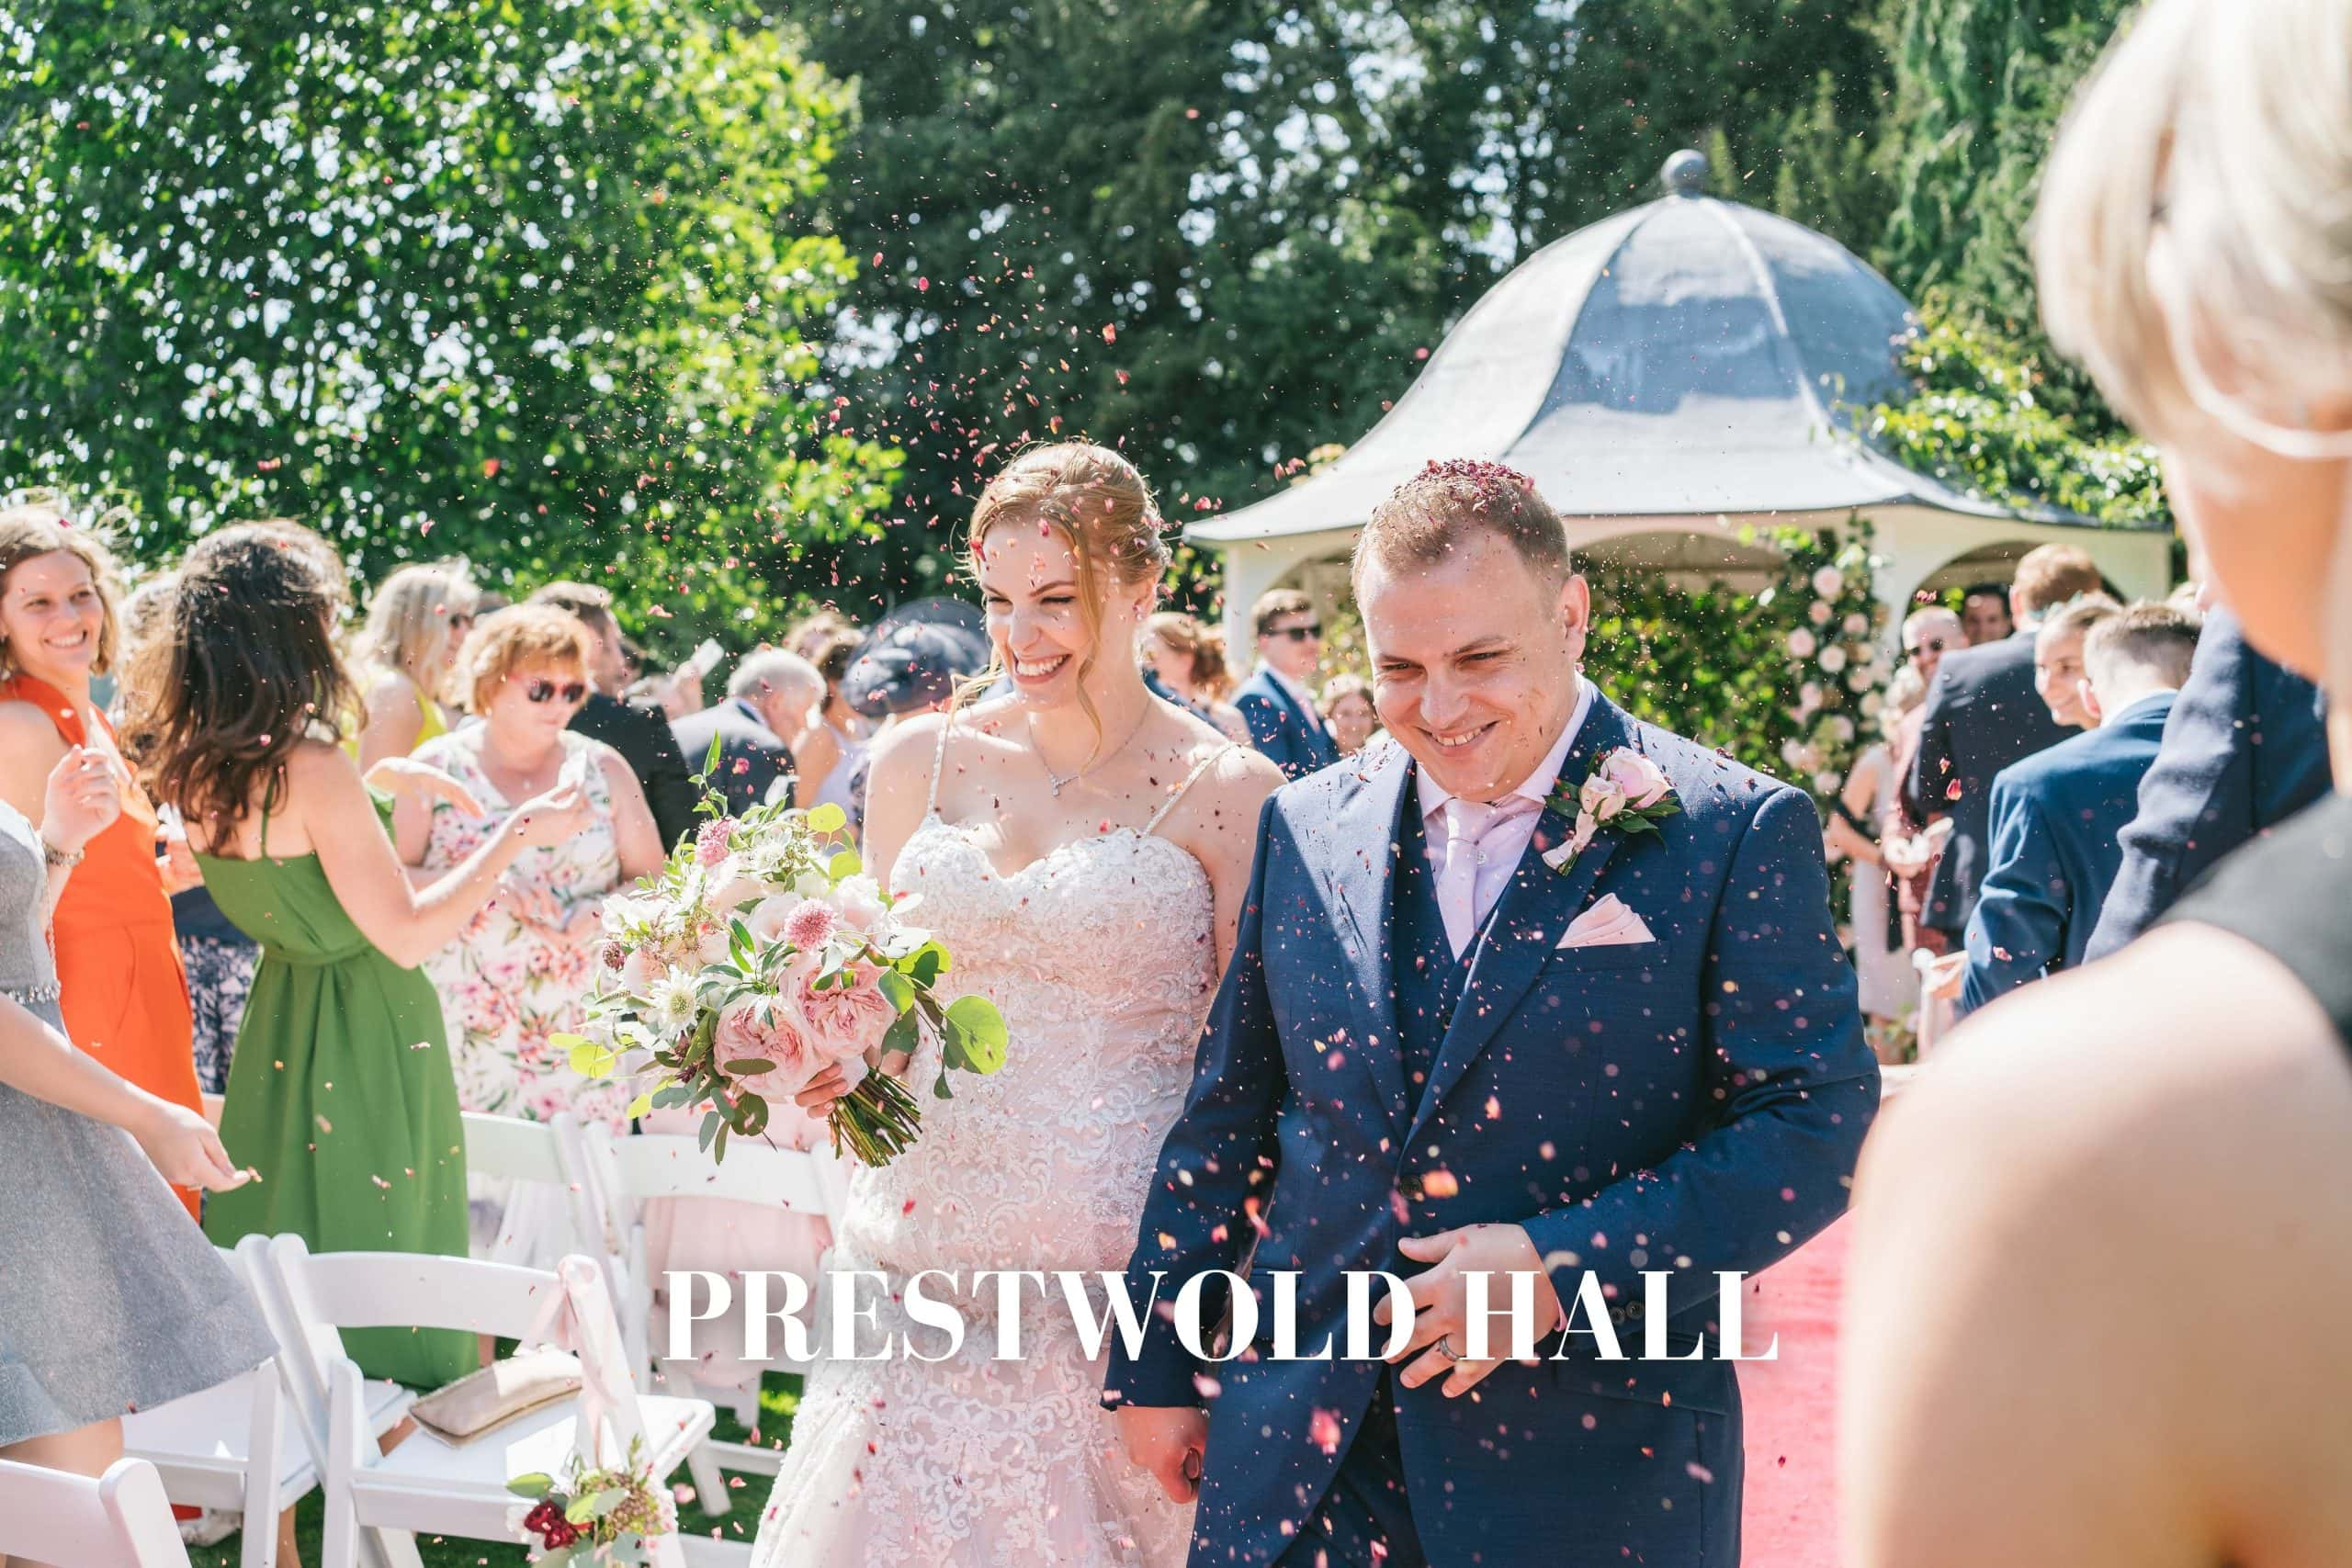 Wedding photography Prestwold Hall - bride and groom confetti outside in the grounds of prestwold hall